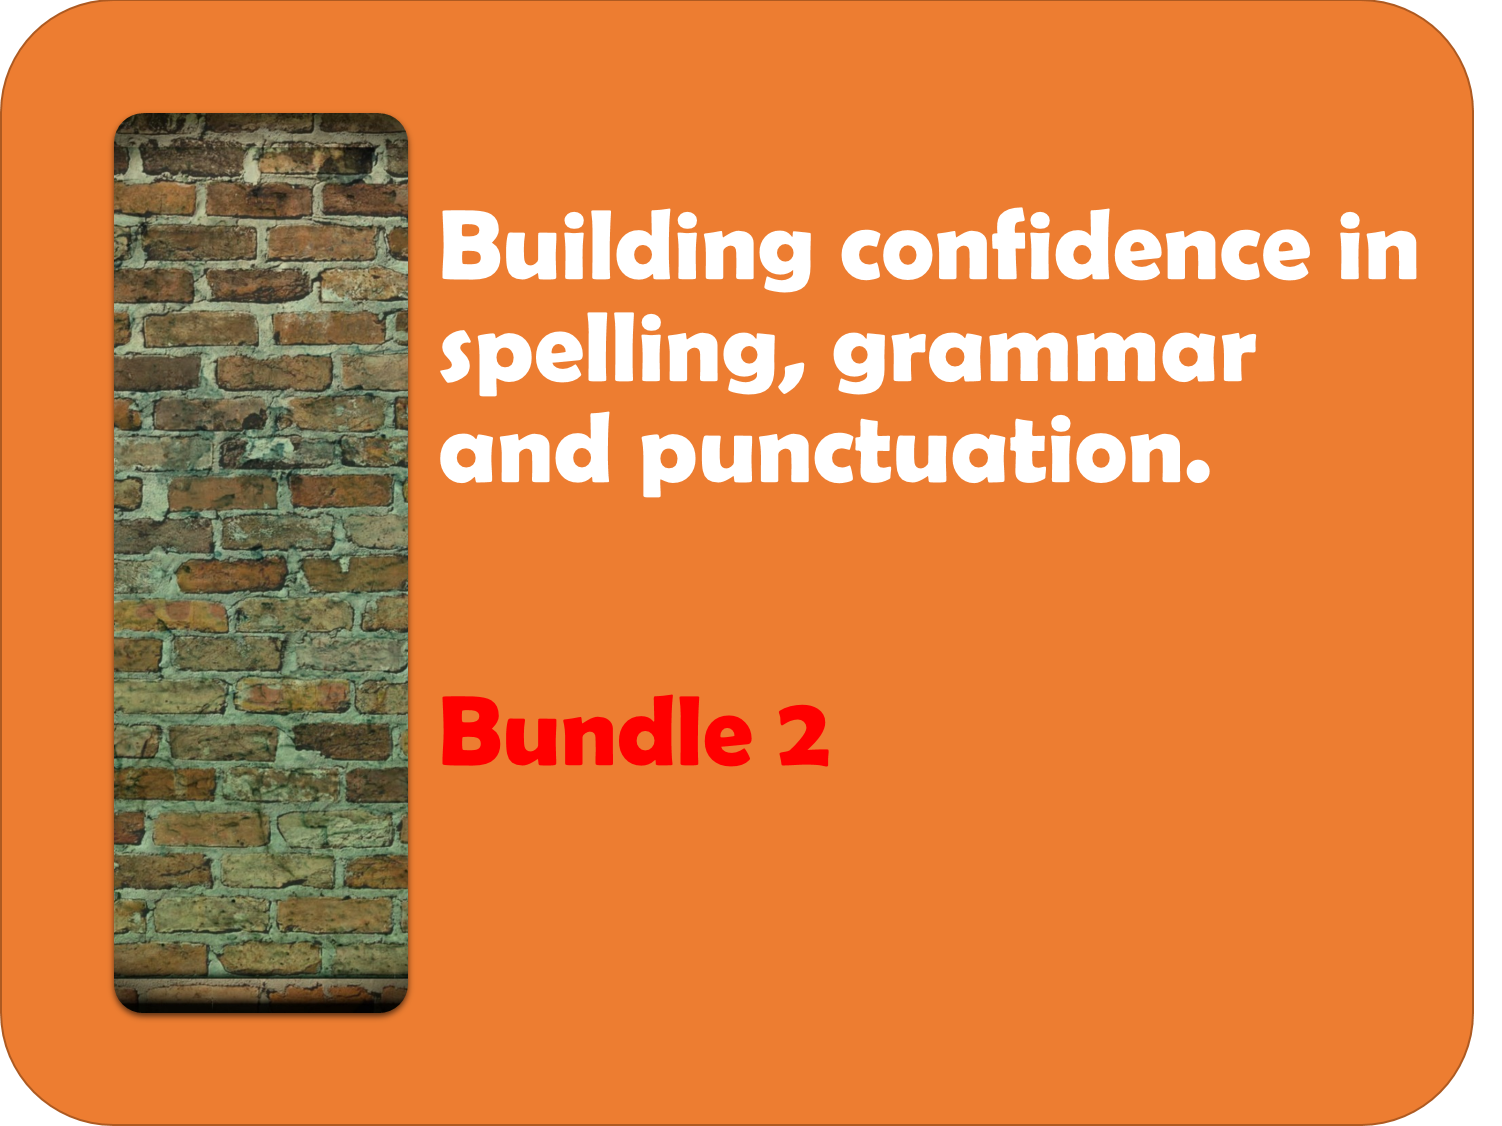 Building confidence in spelling, punctuation and grammar 2